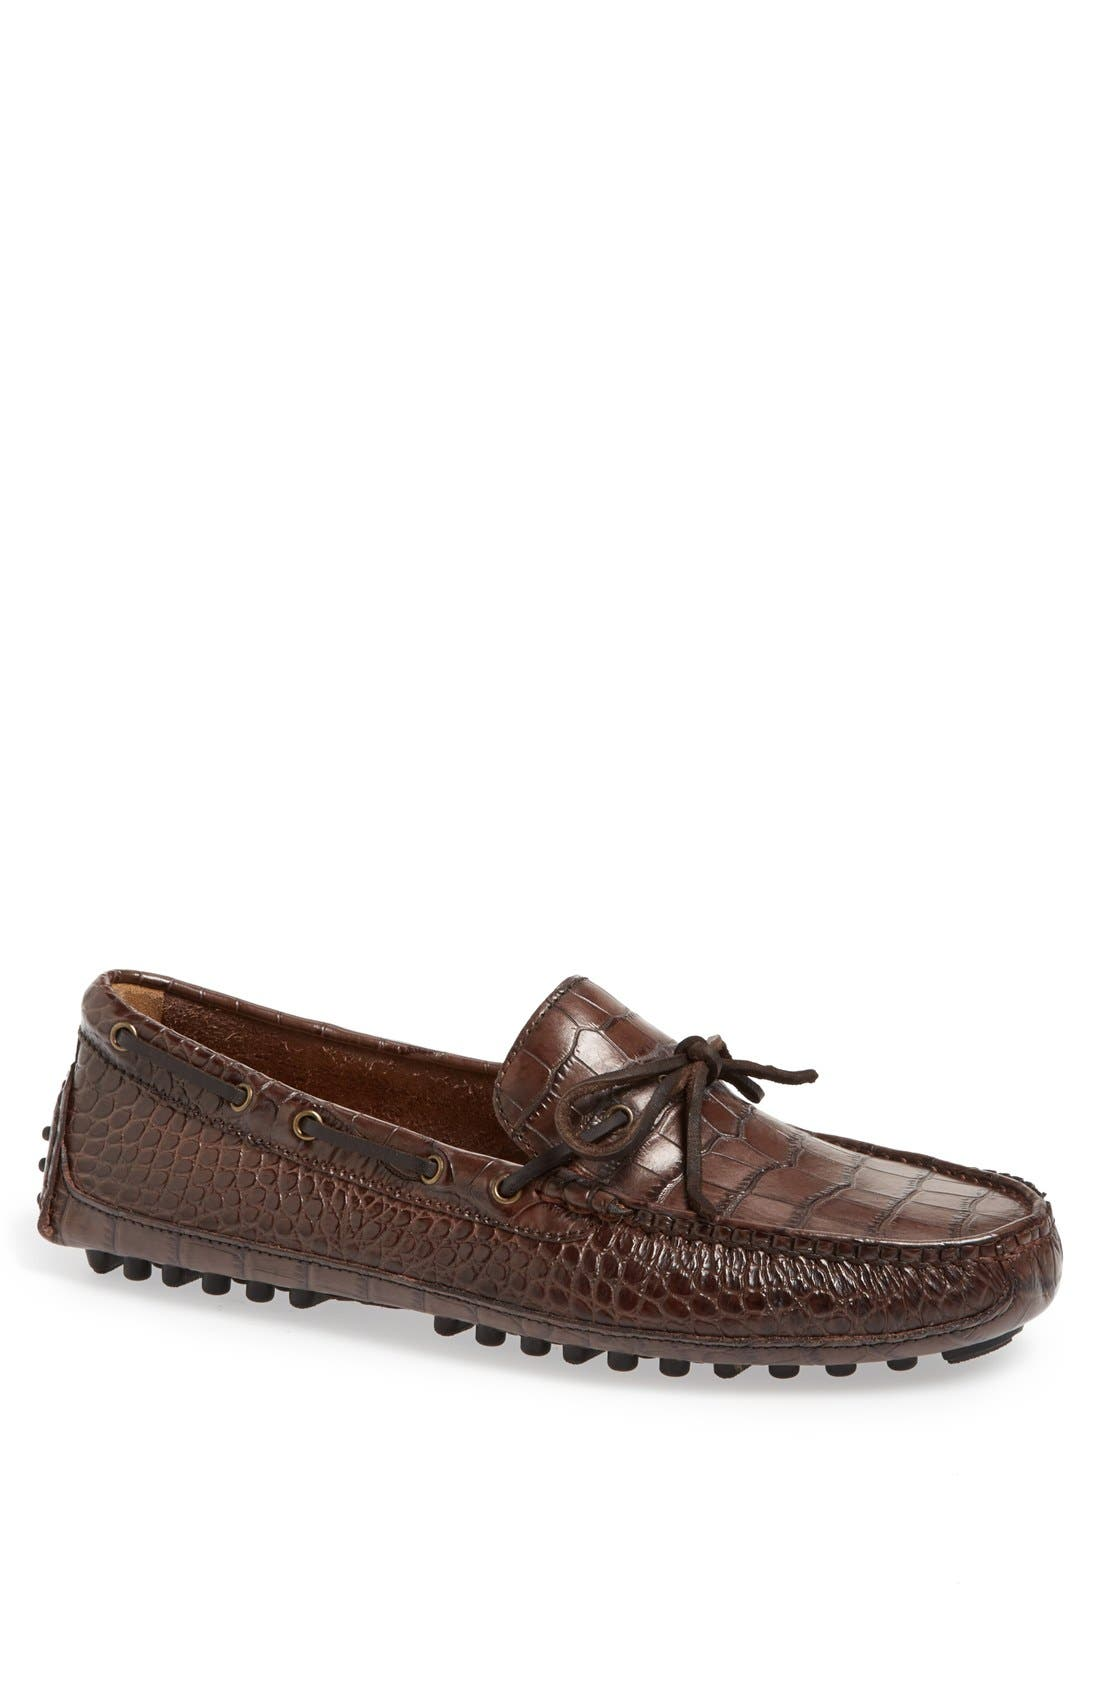 Alternate Image 1 Selected - Cole Haan 'Grant Canoe Camp' Driving Moccasin (Men)